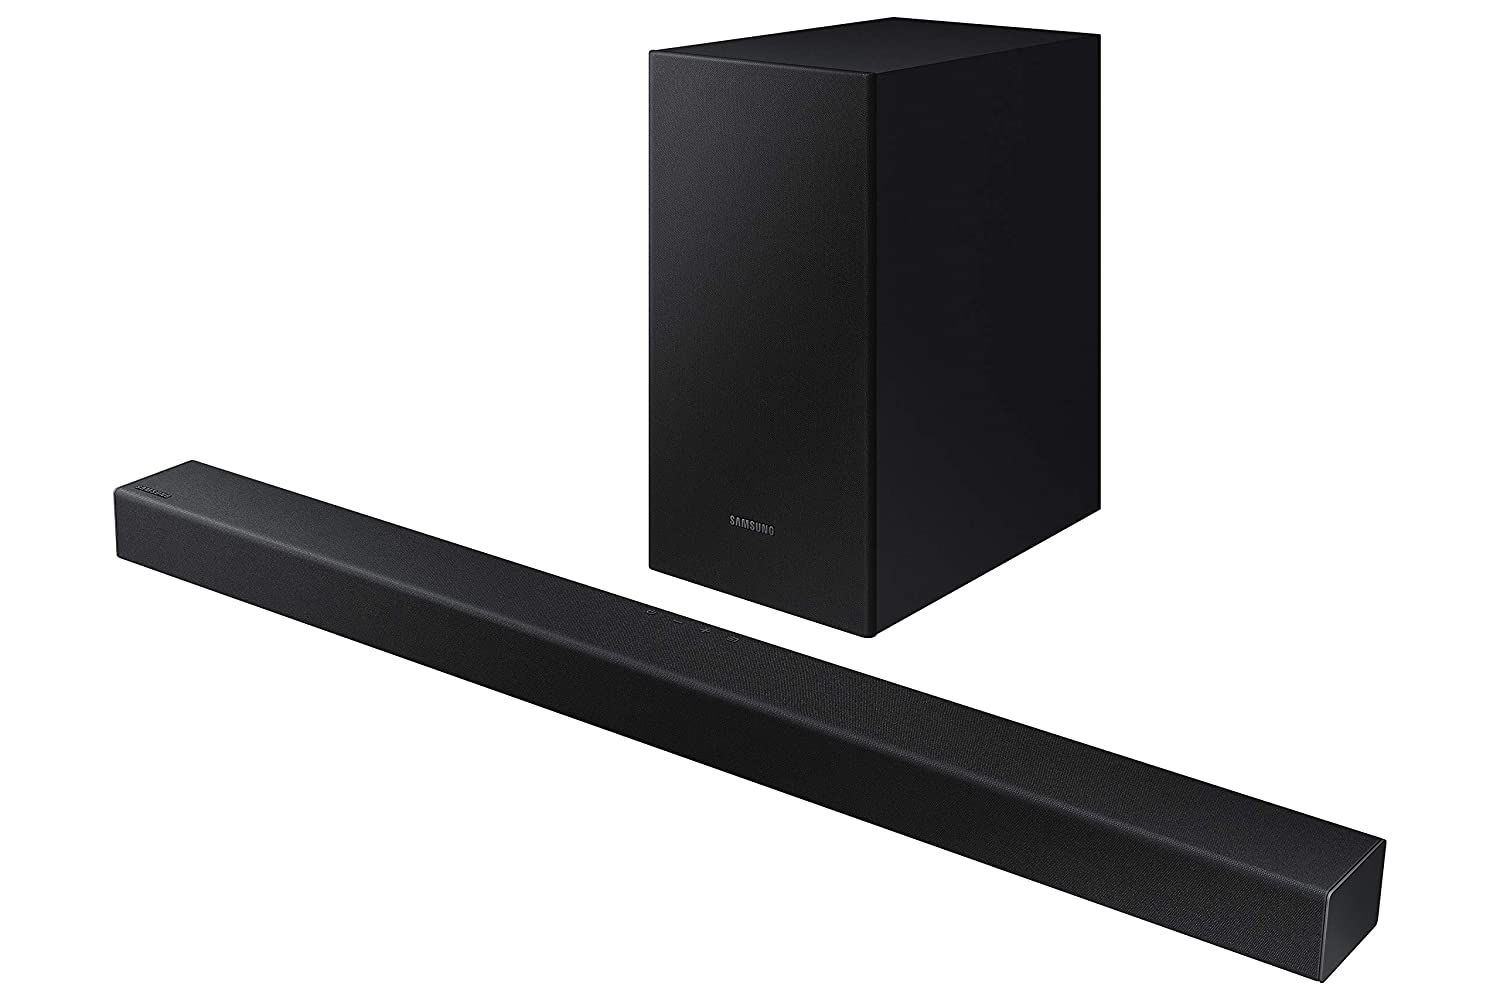 Samsung T45E 2.1 Channel Soundbar with Wireless Subwoofer